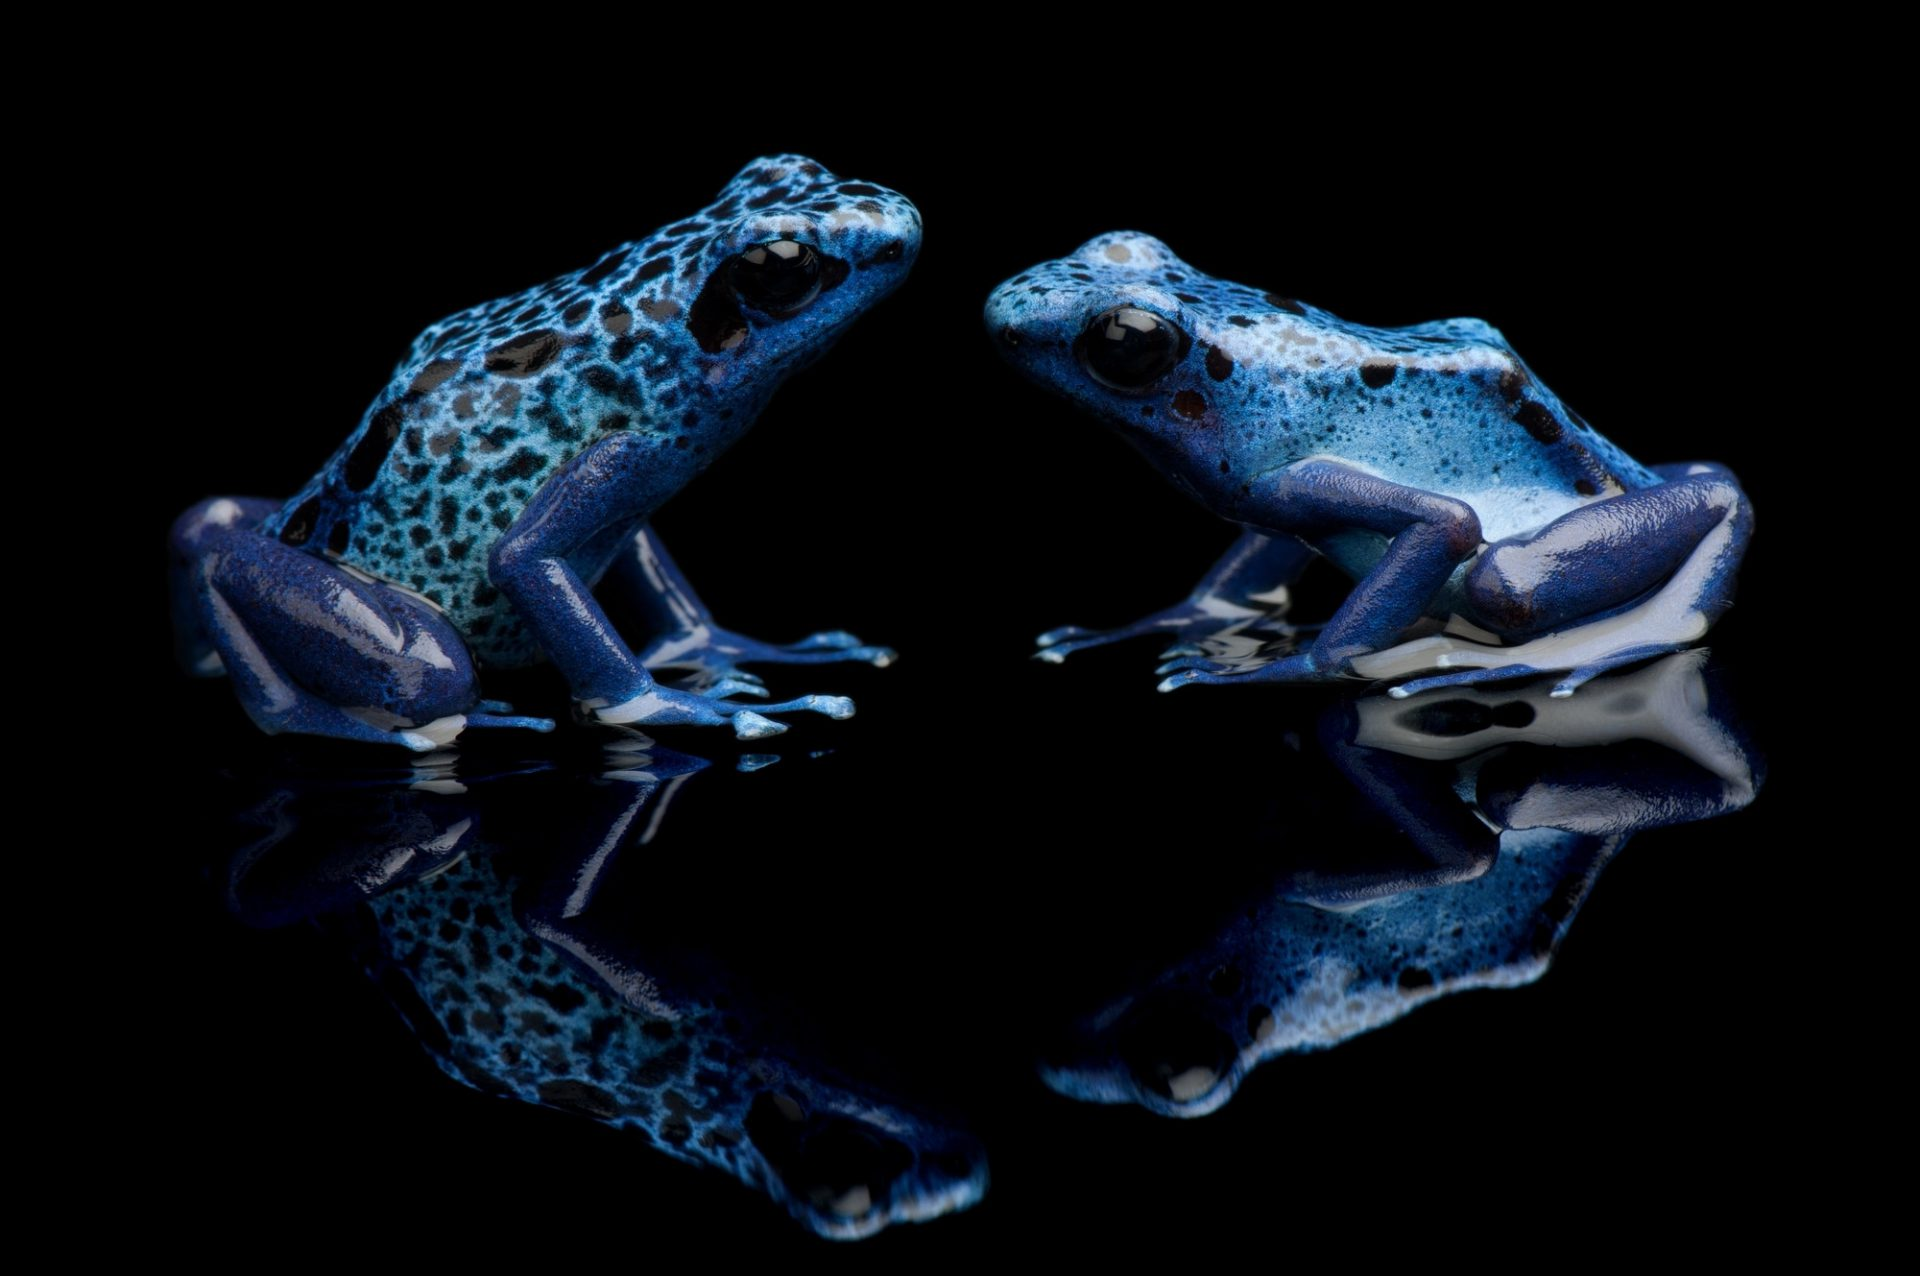 A pair of blue poison dart frogs (Dendrobates azureus) at Reptile Gardens.